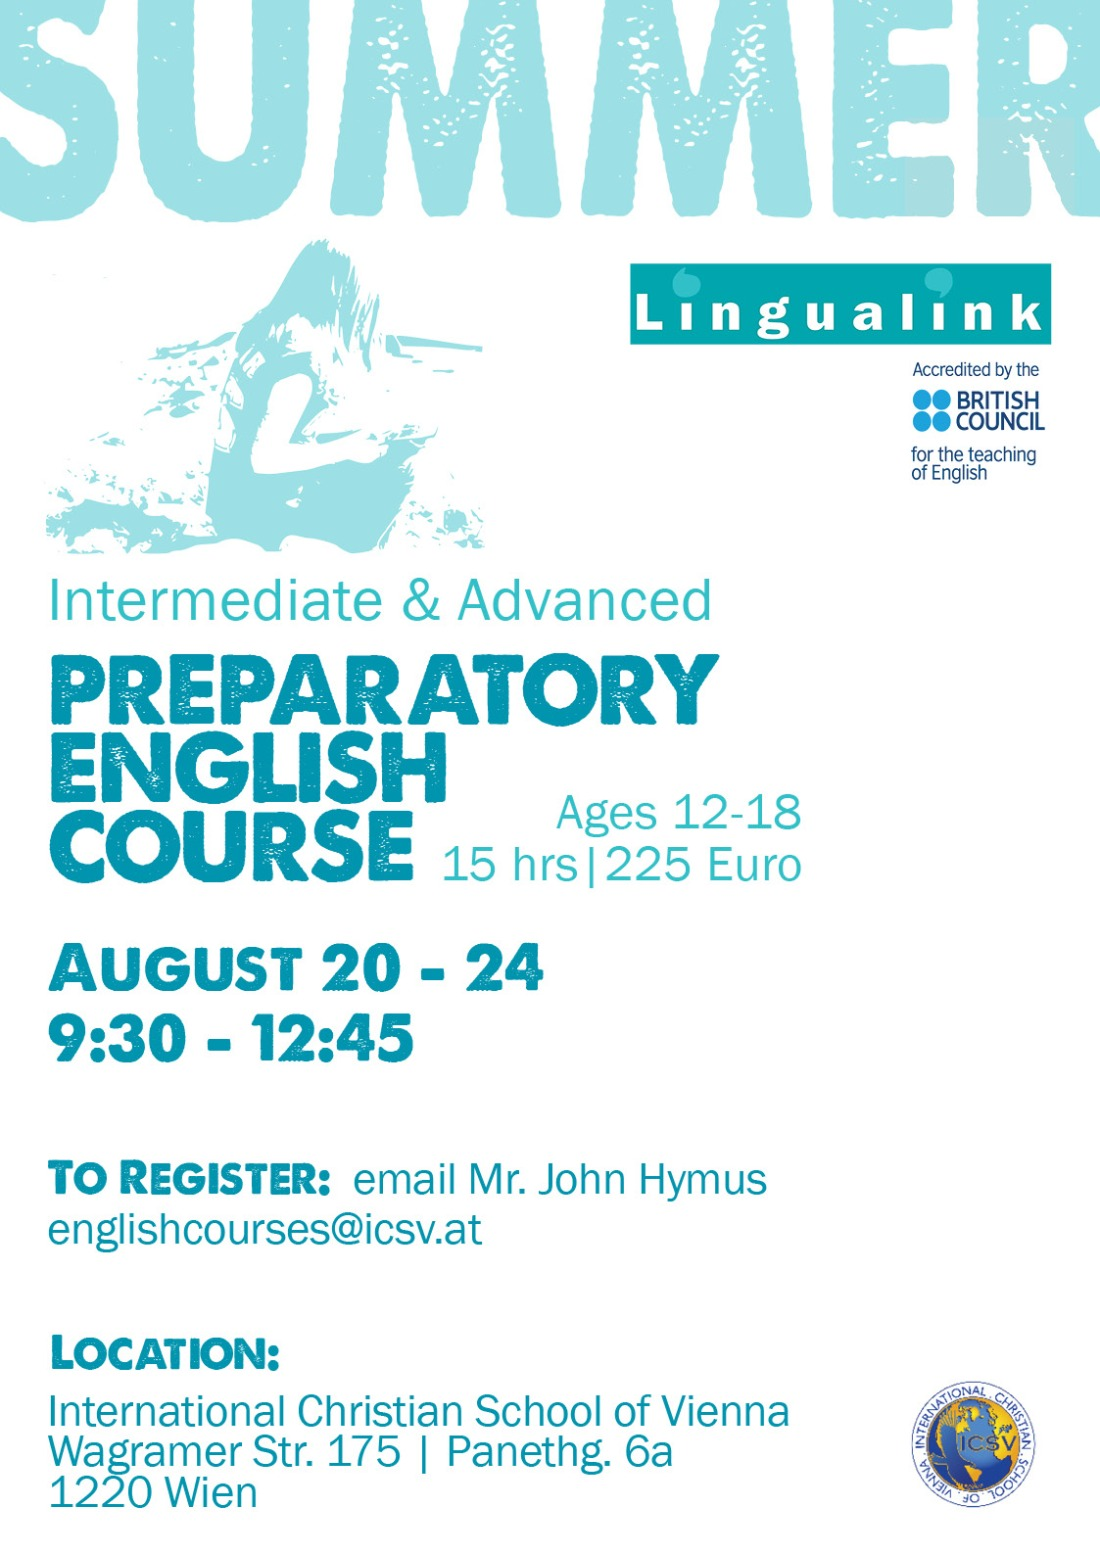 Linqualink at ICSV | Summer English Language Course Announcement